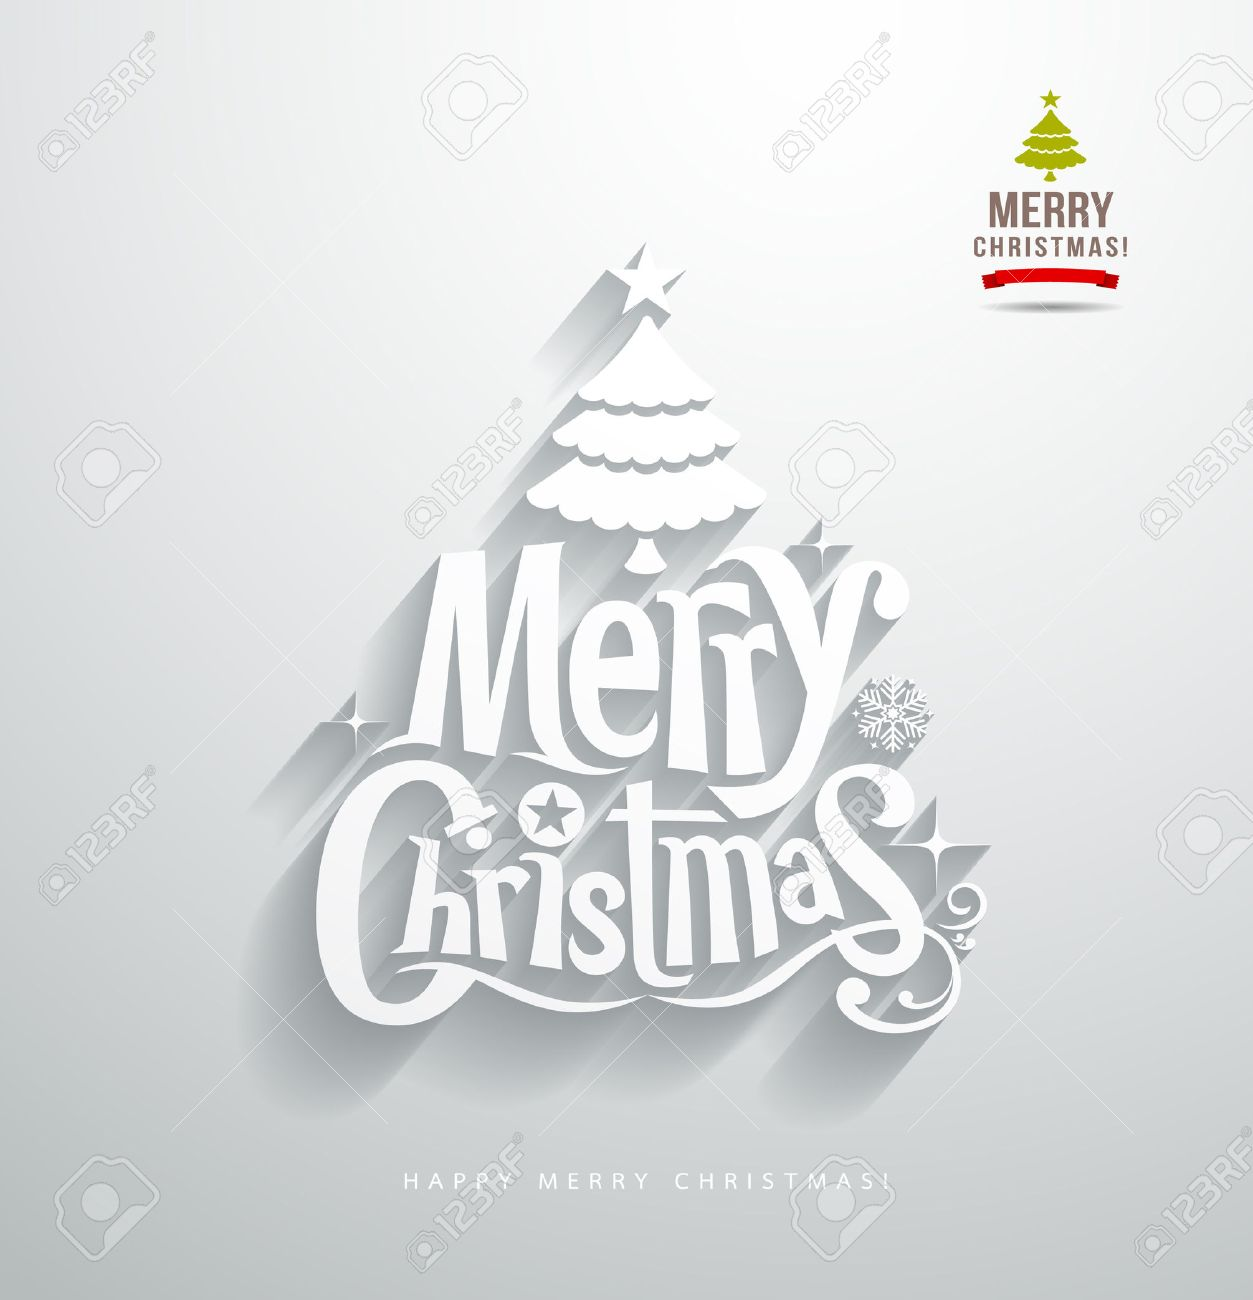 Merry Christmas, lettering paper cut design background Stock Vector - 24187515